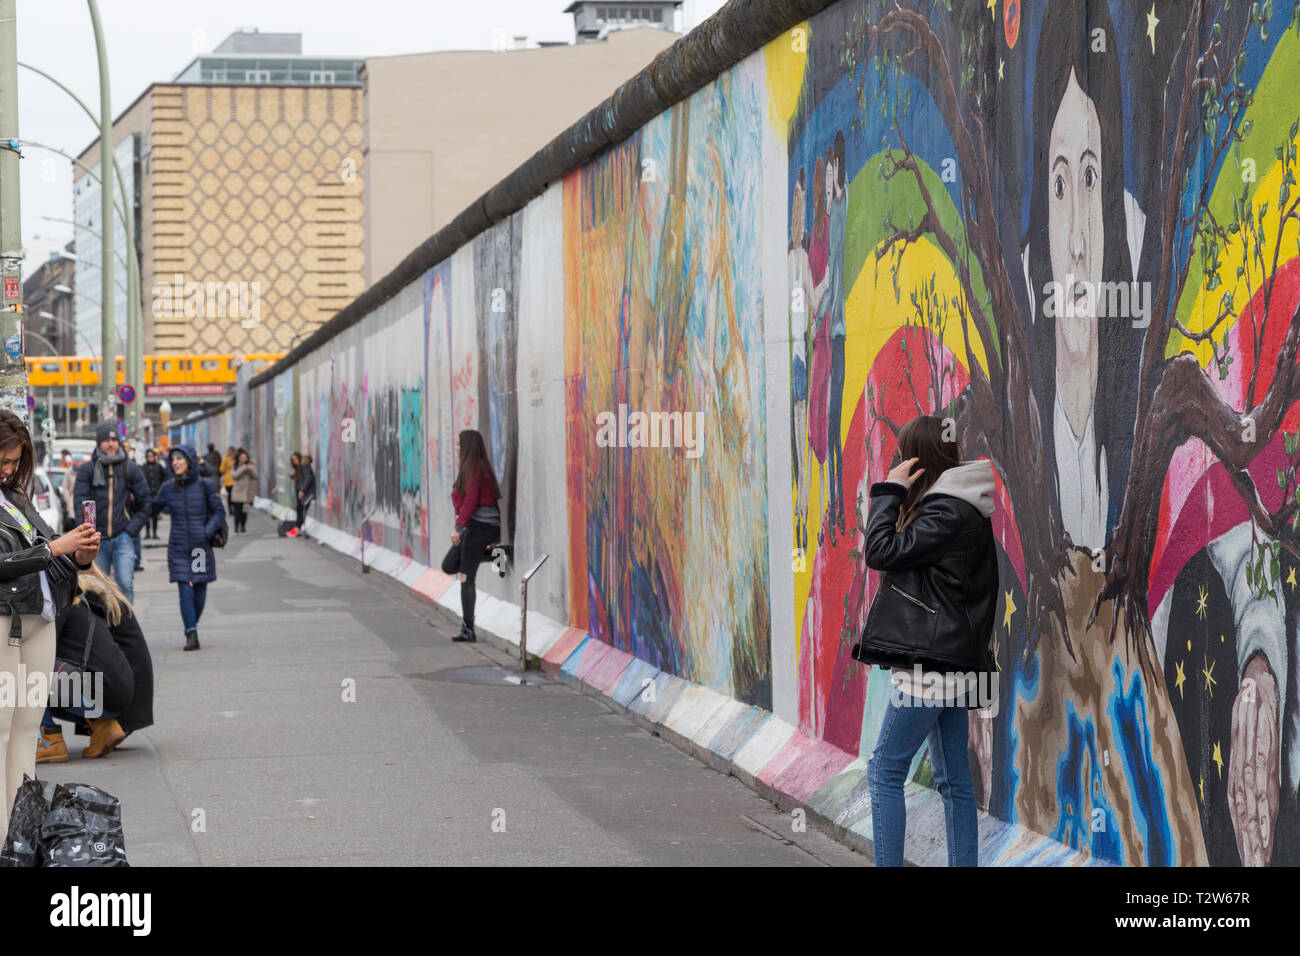 Tourists walking by, taking photos and posing in front of murals at the East Side Gallery, section of the Berlin Wall in Berlin, Germany. Stock Photo